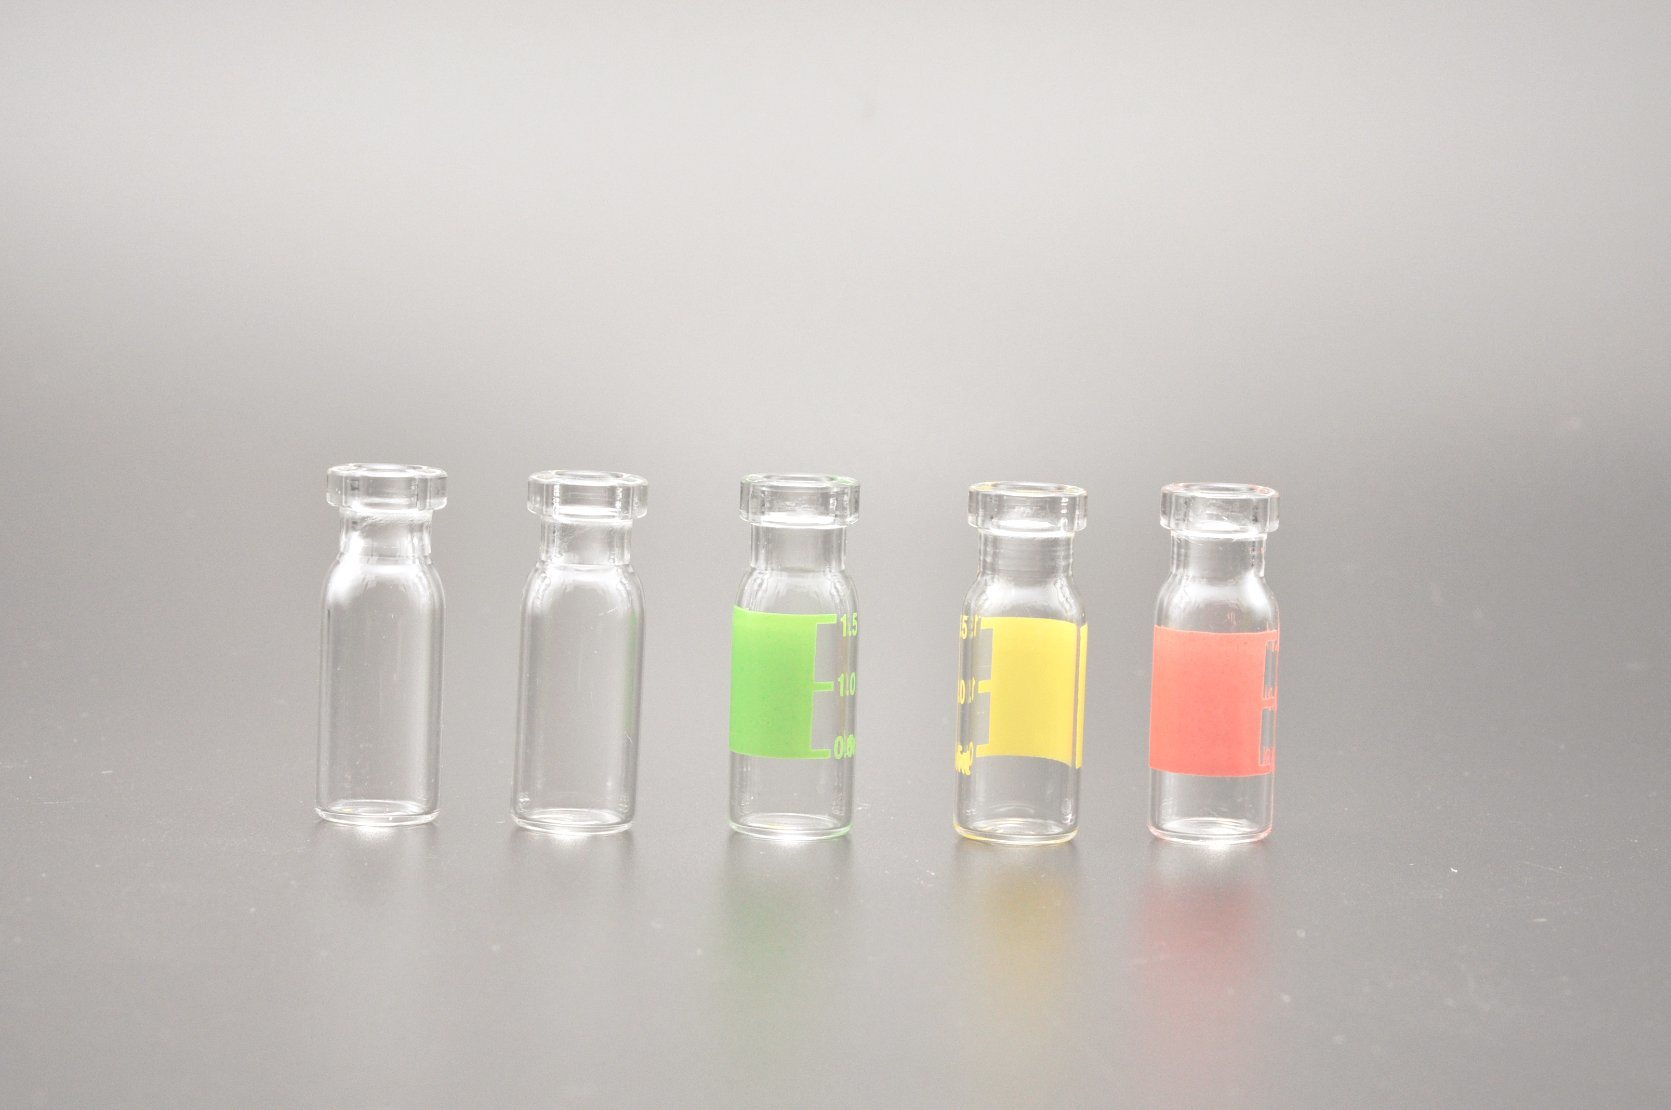 1.5ml Chromatography Vials for HPLC and Gc